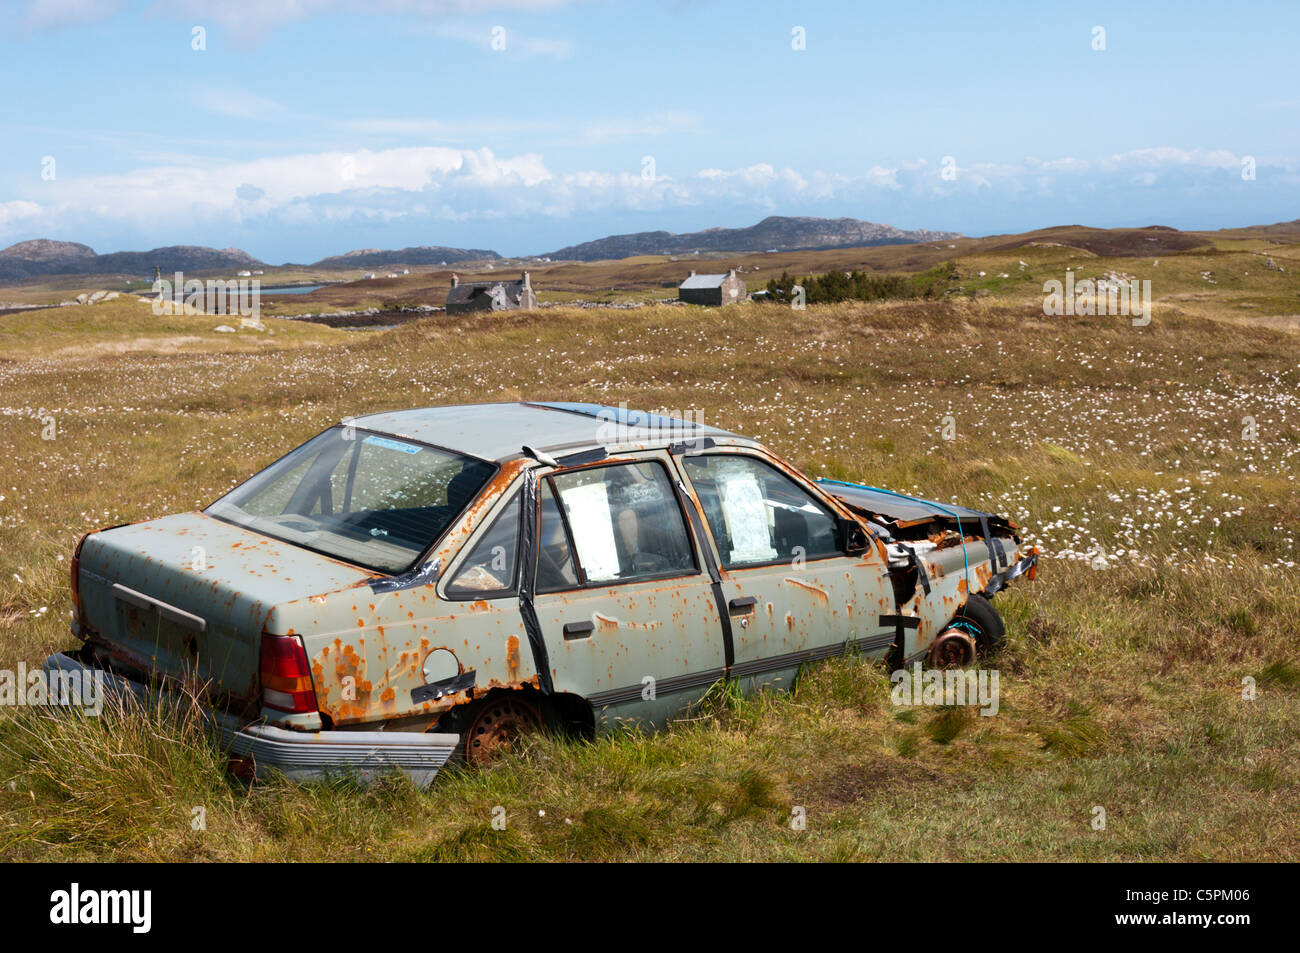 An abandoned car on the island of Flodaigh in the Outer Hebrides. - Stock Image